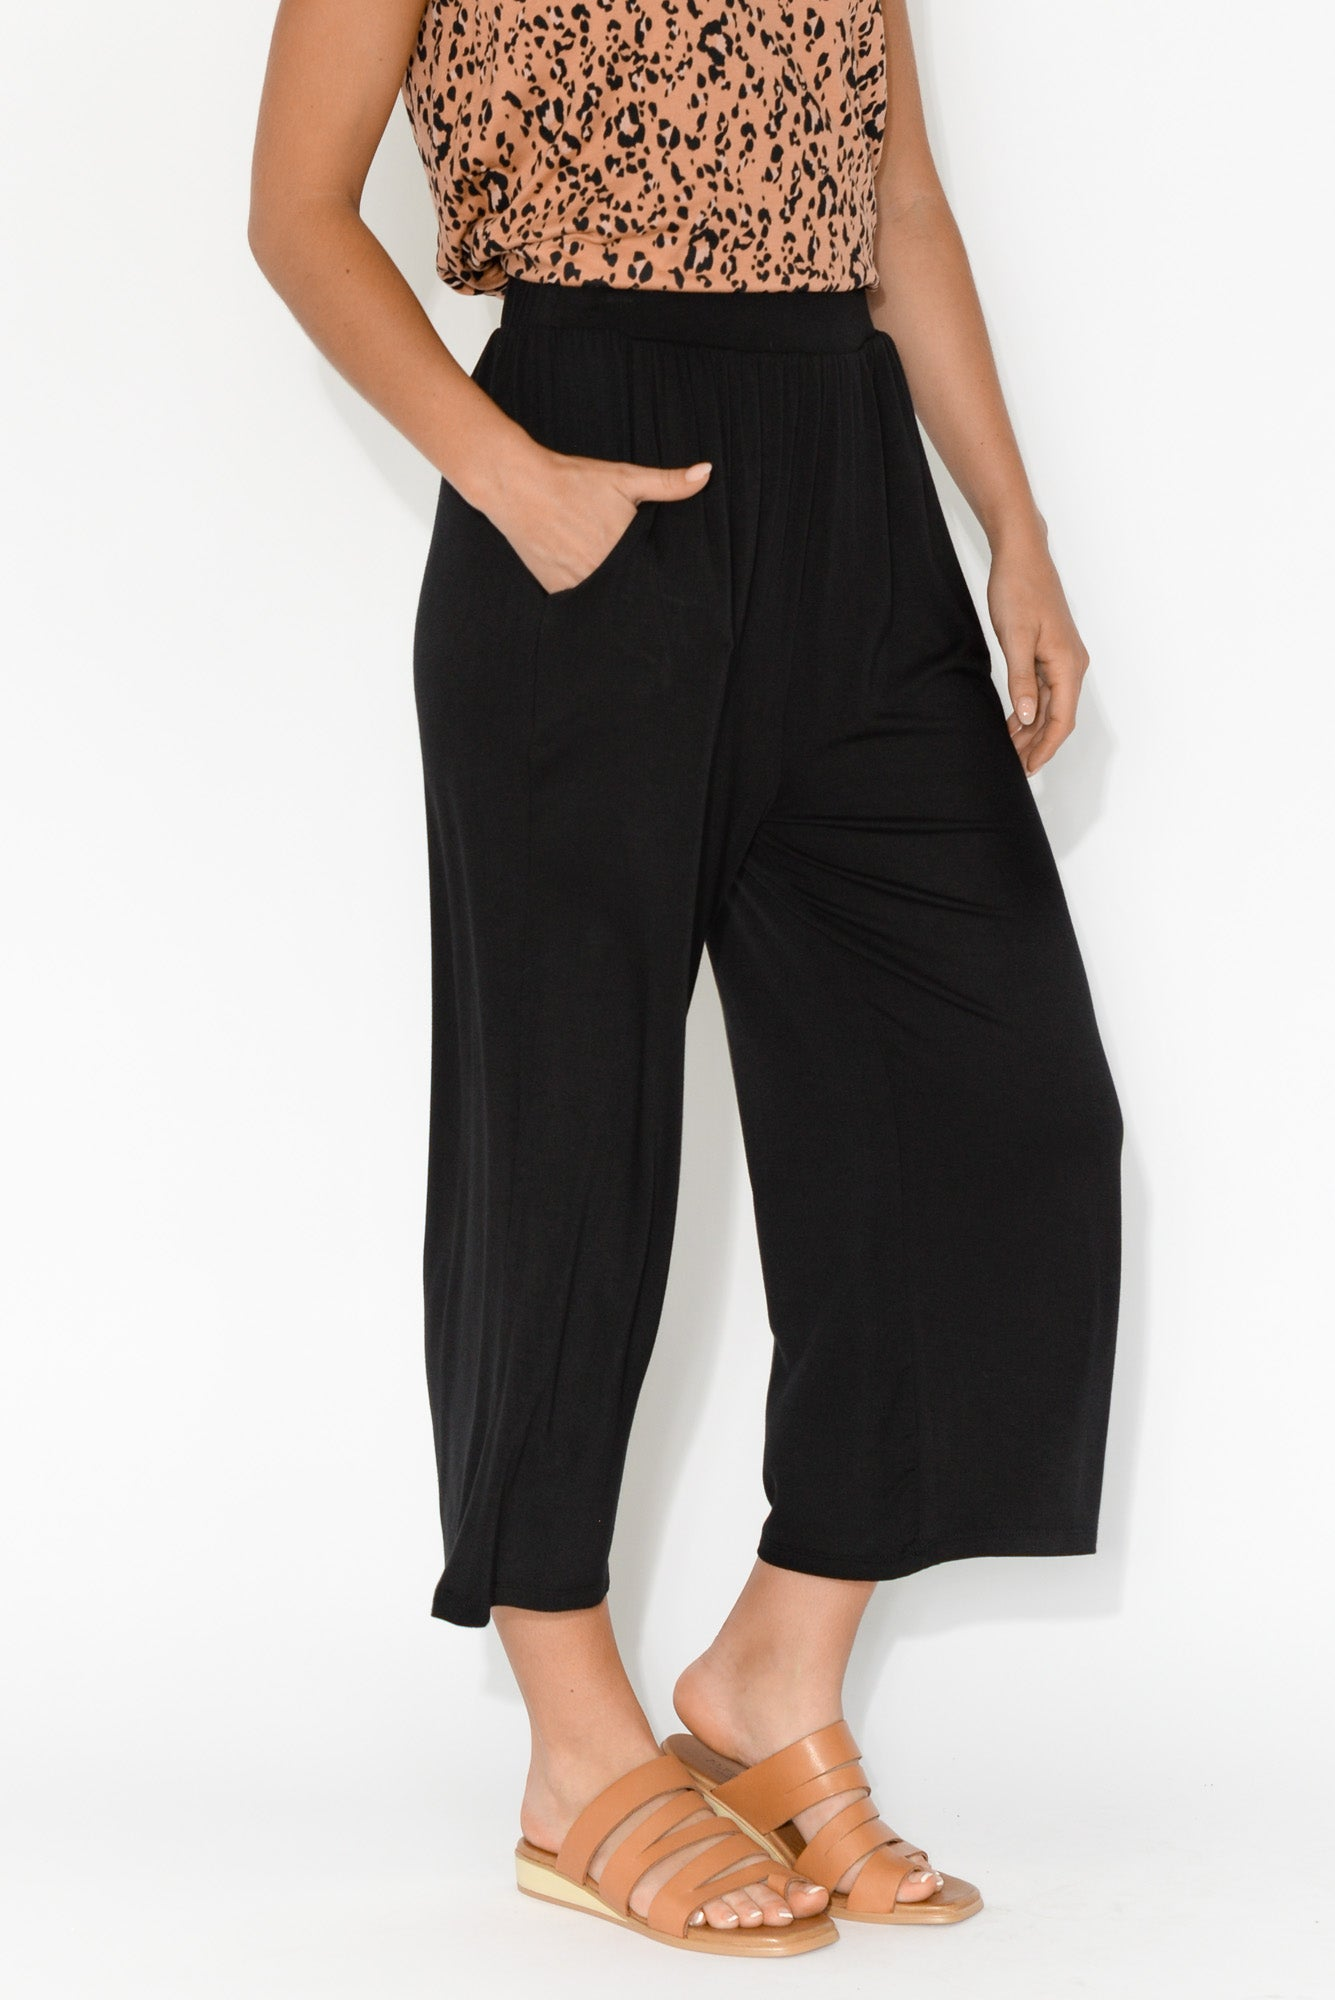 Dublin Black Cropped Pant